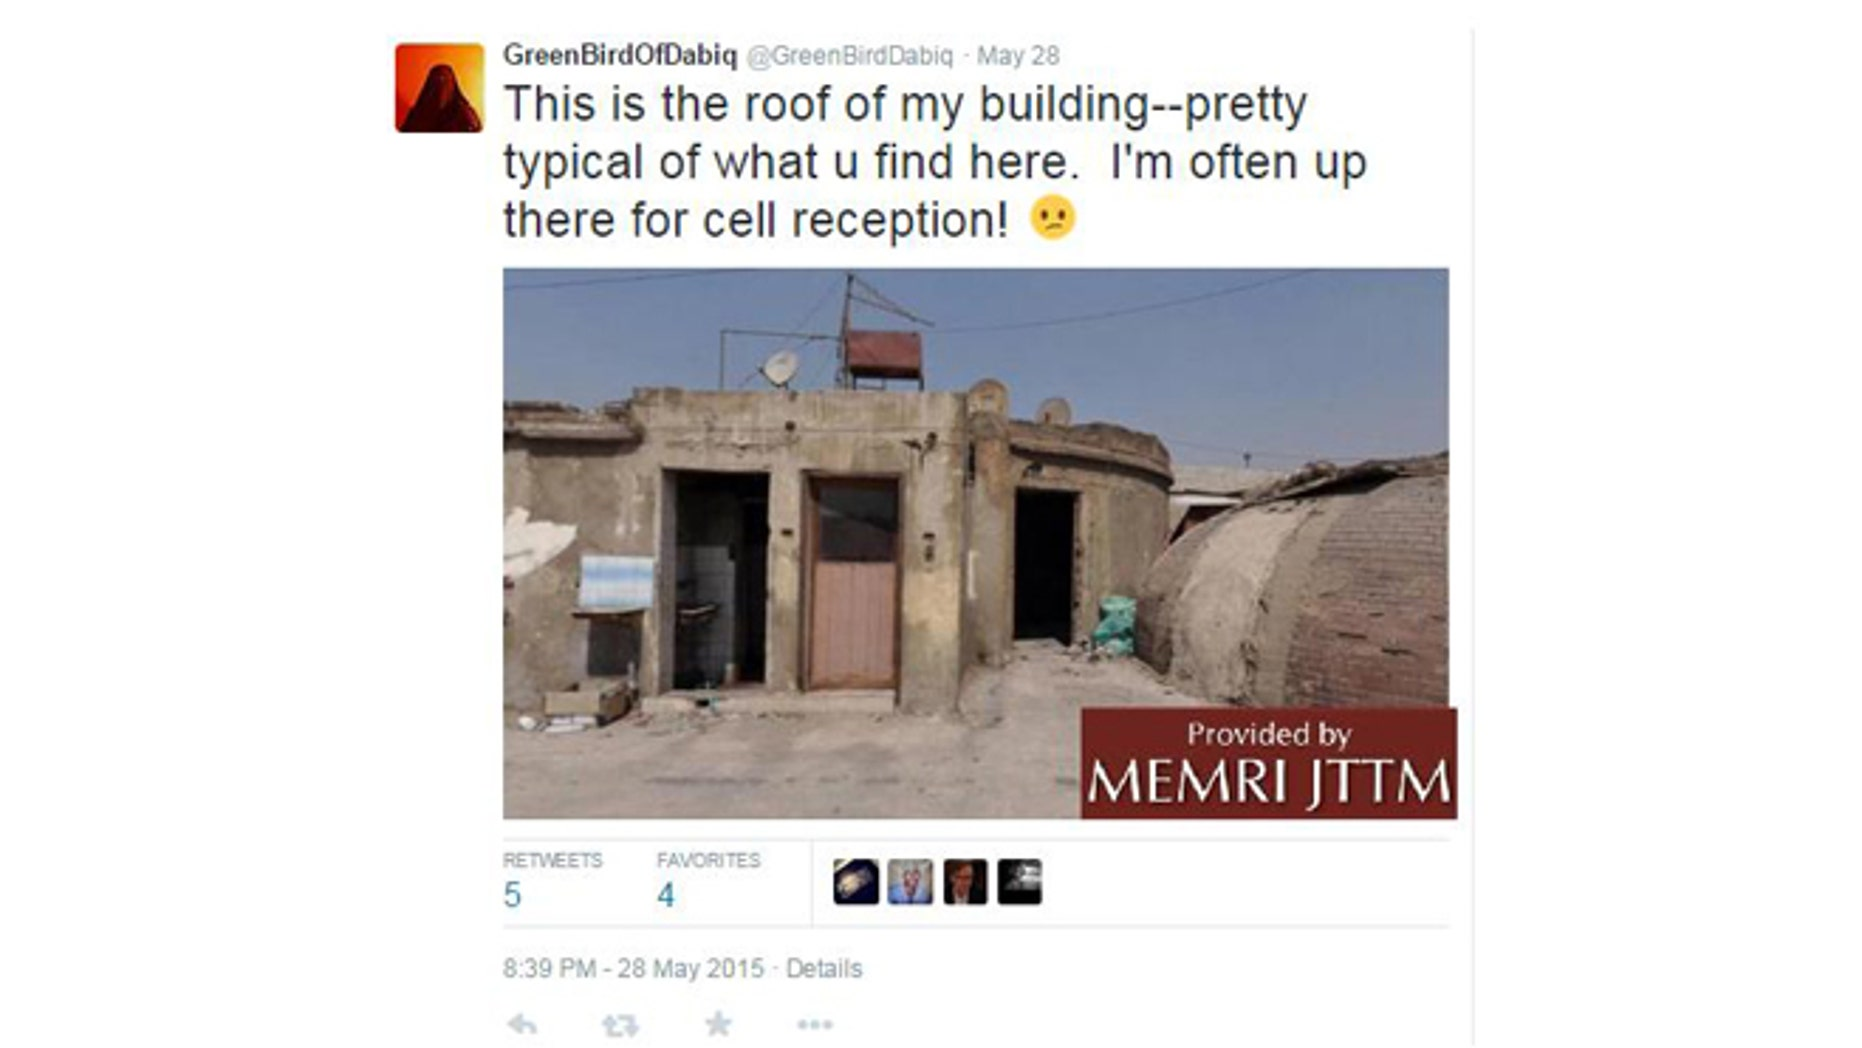 Western defectors now with the Islamic State, often take to social media to complain about their quality of life in the so-called caliphate. (MEMRI JTTF)